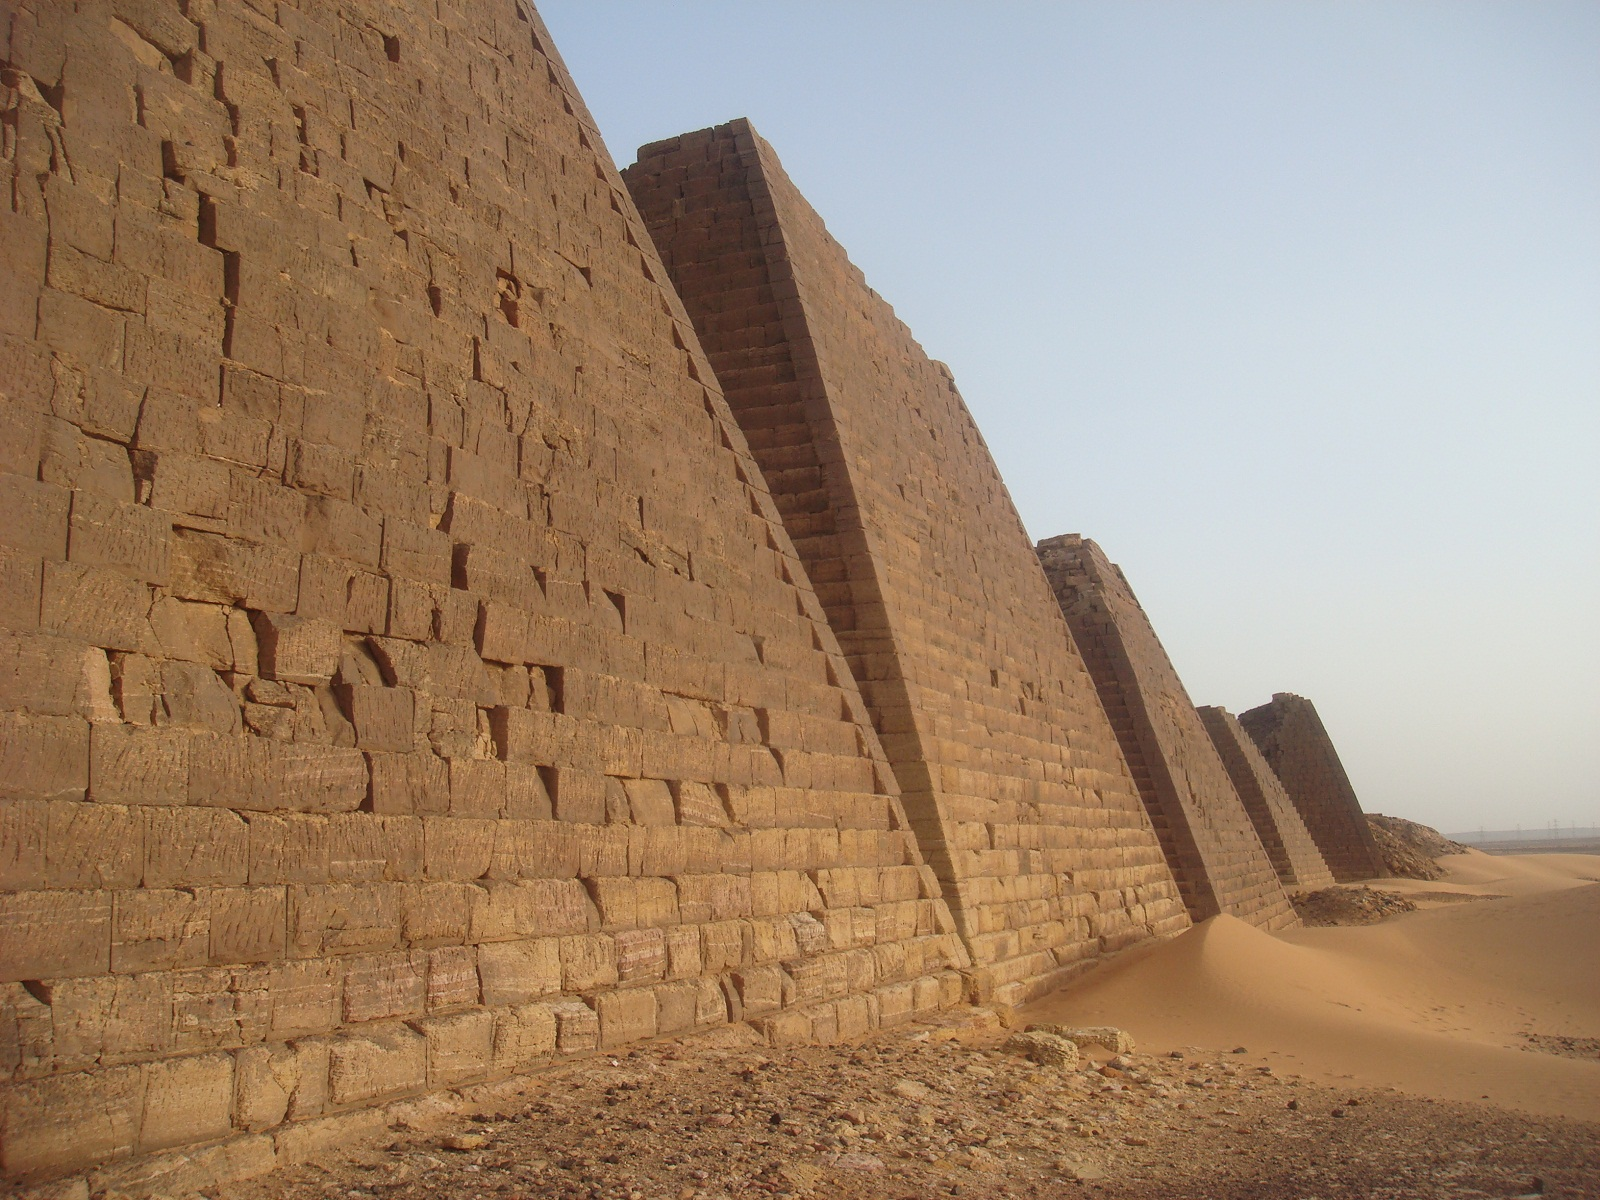 Kerma, Sudan, Meroe pyramids closer view